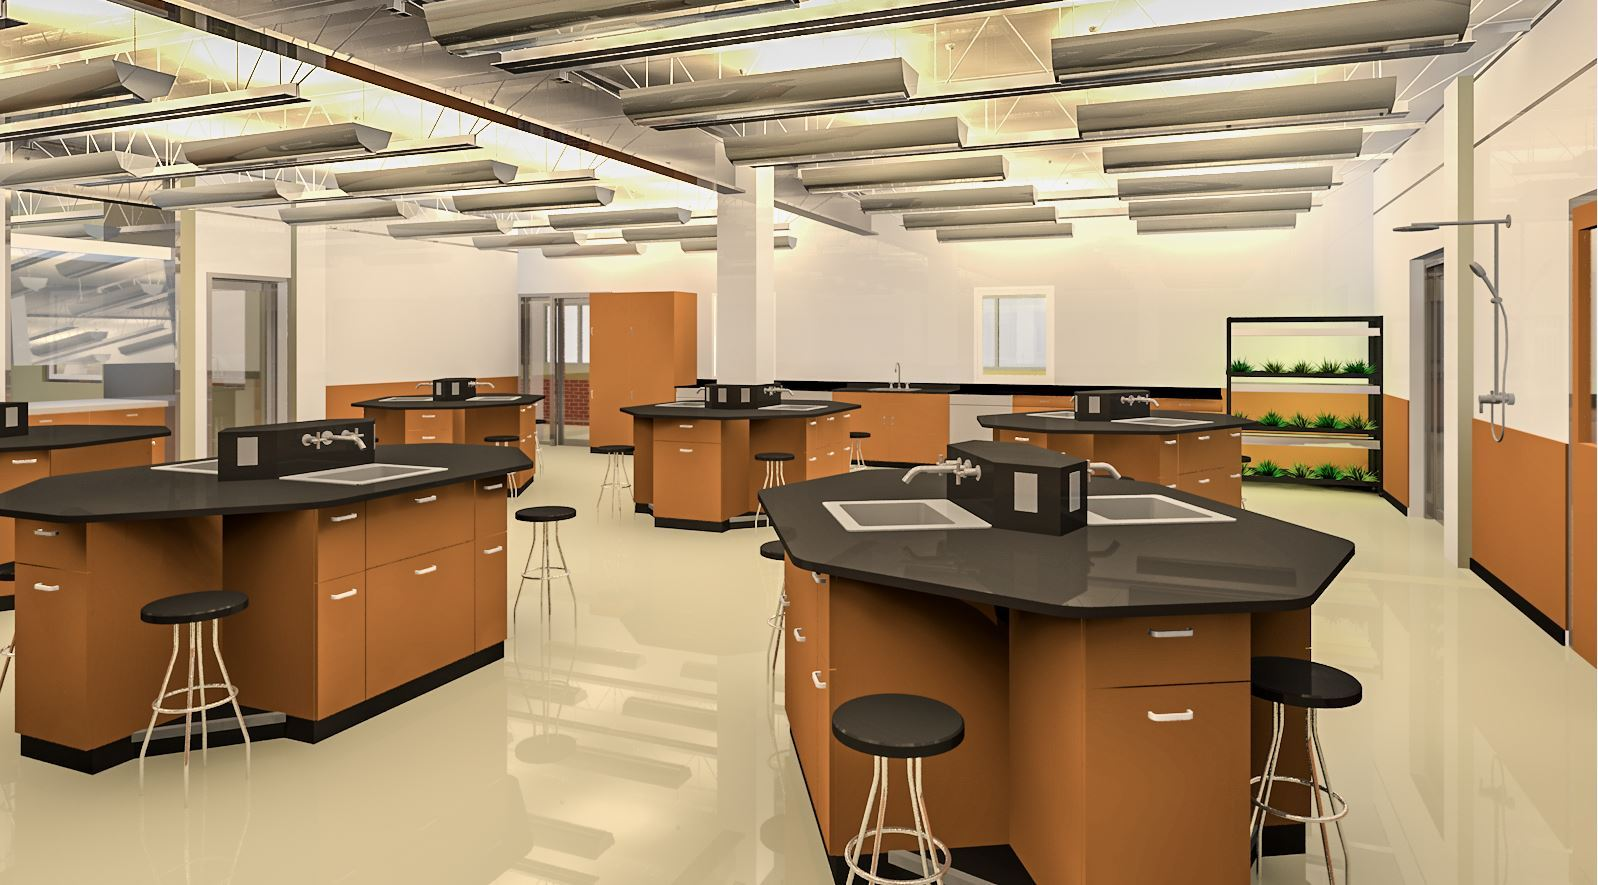 Science Lab - Upper Level